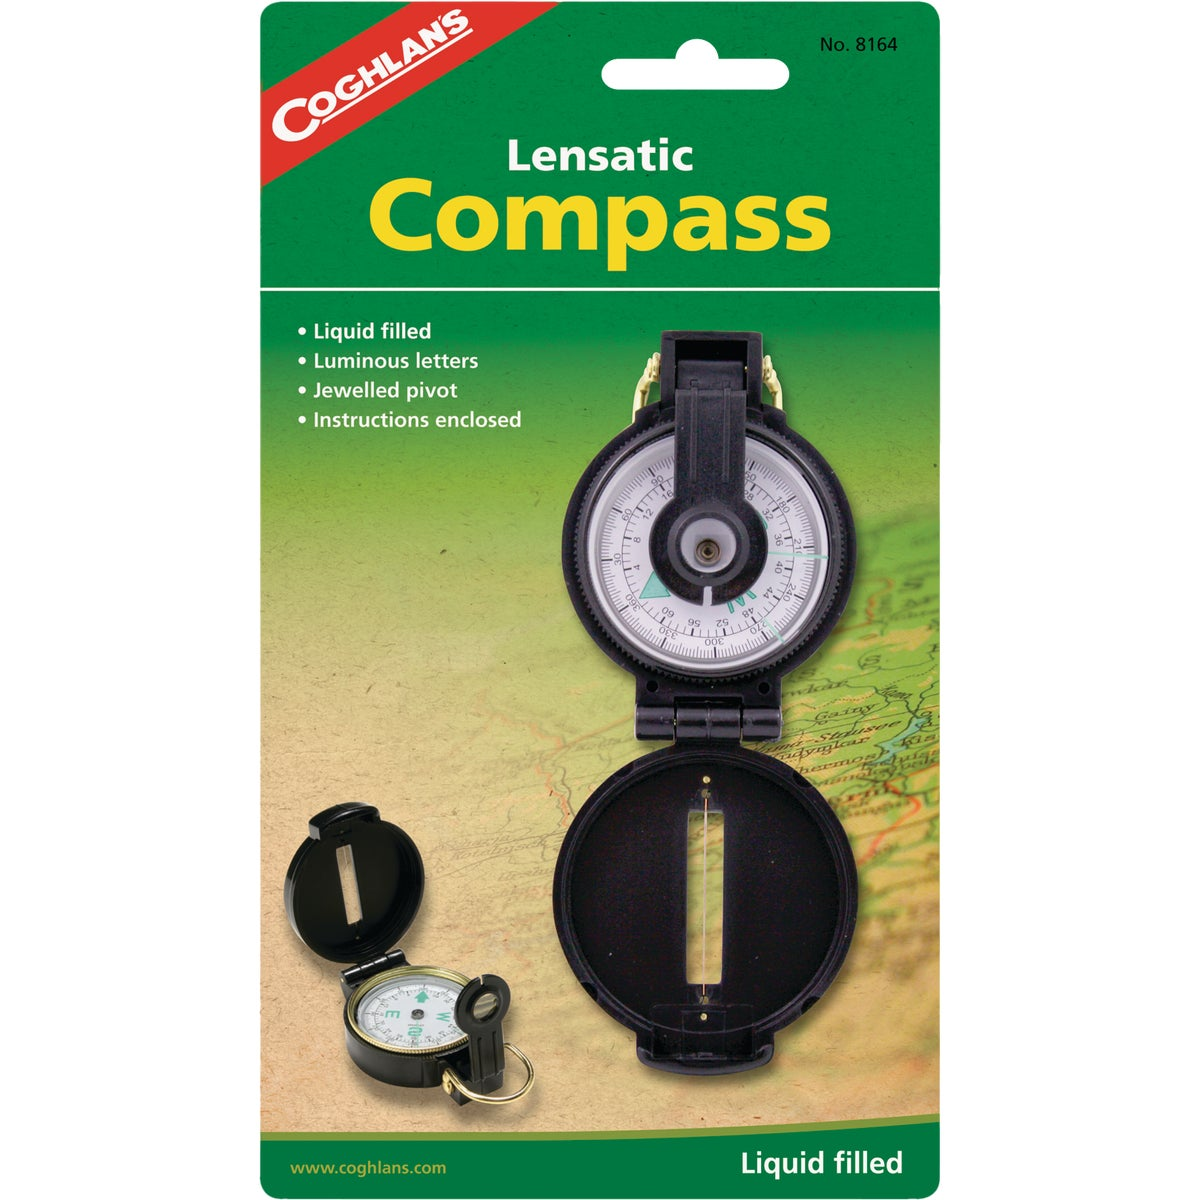 LENSATIC COMPASS - 51610 by Academy Broadway Cor